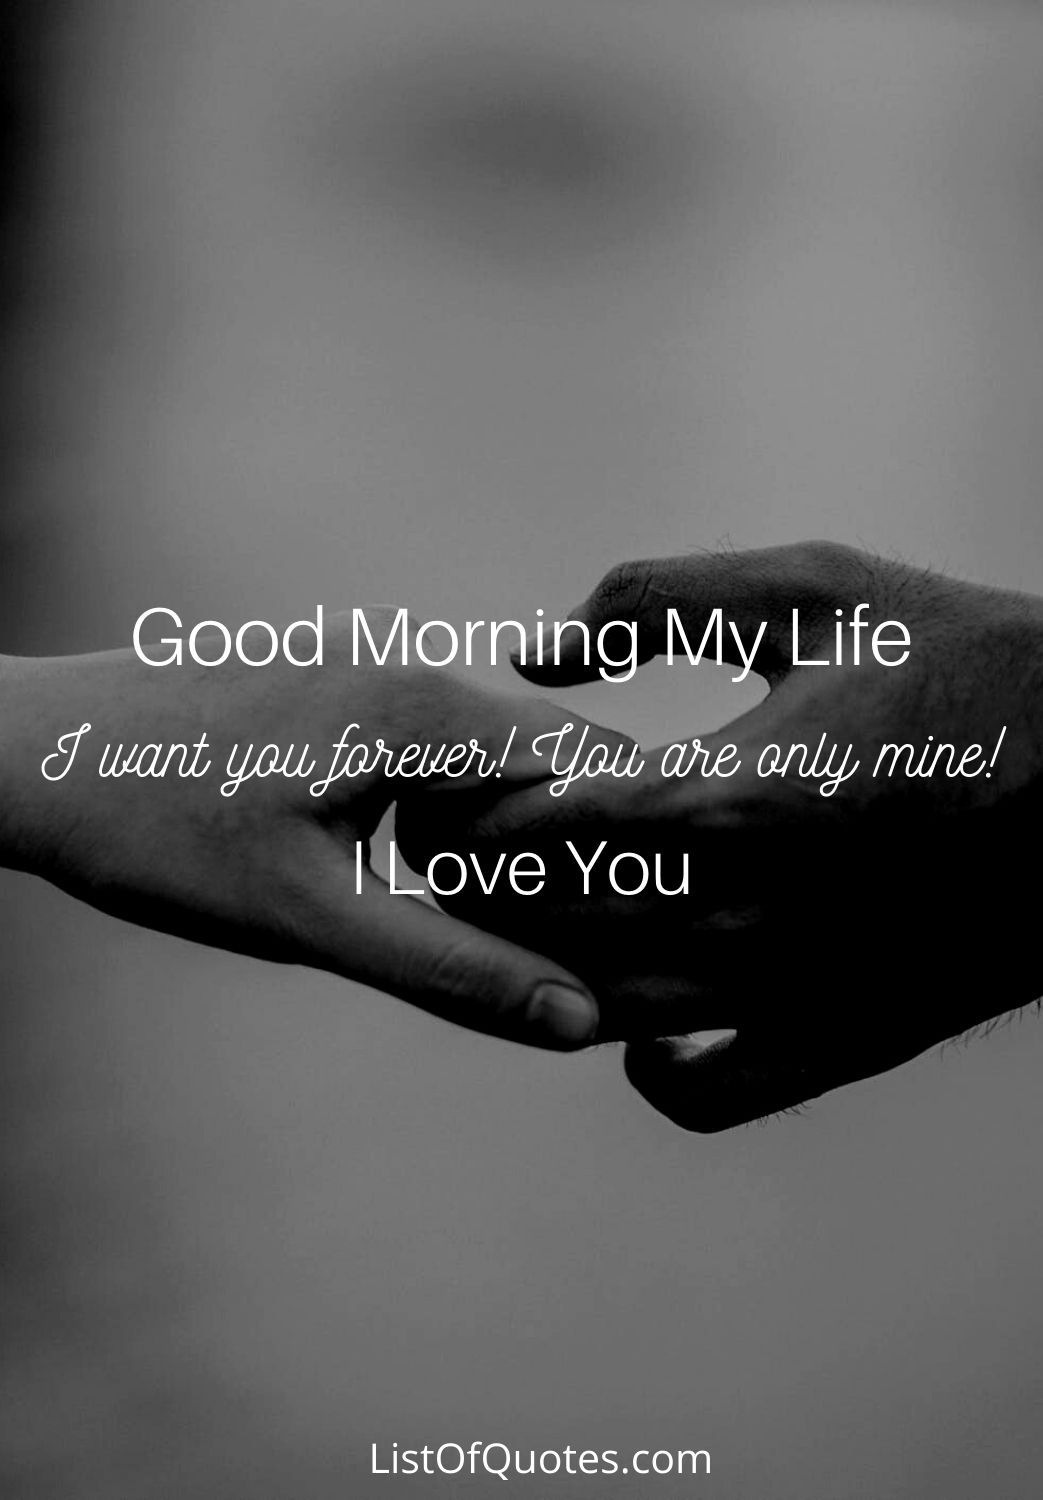 romantic cute good morning messages quotes wishes for husband wife